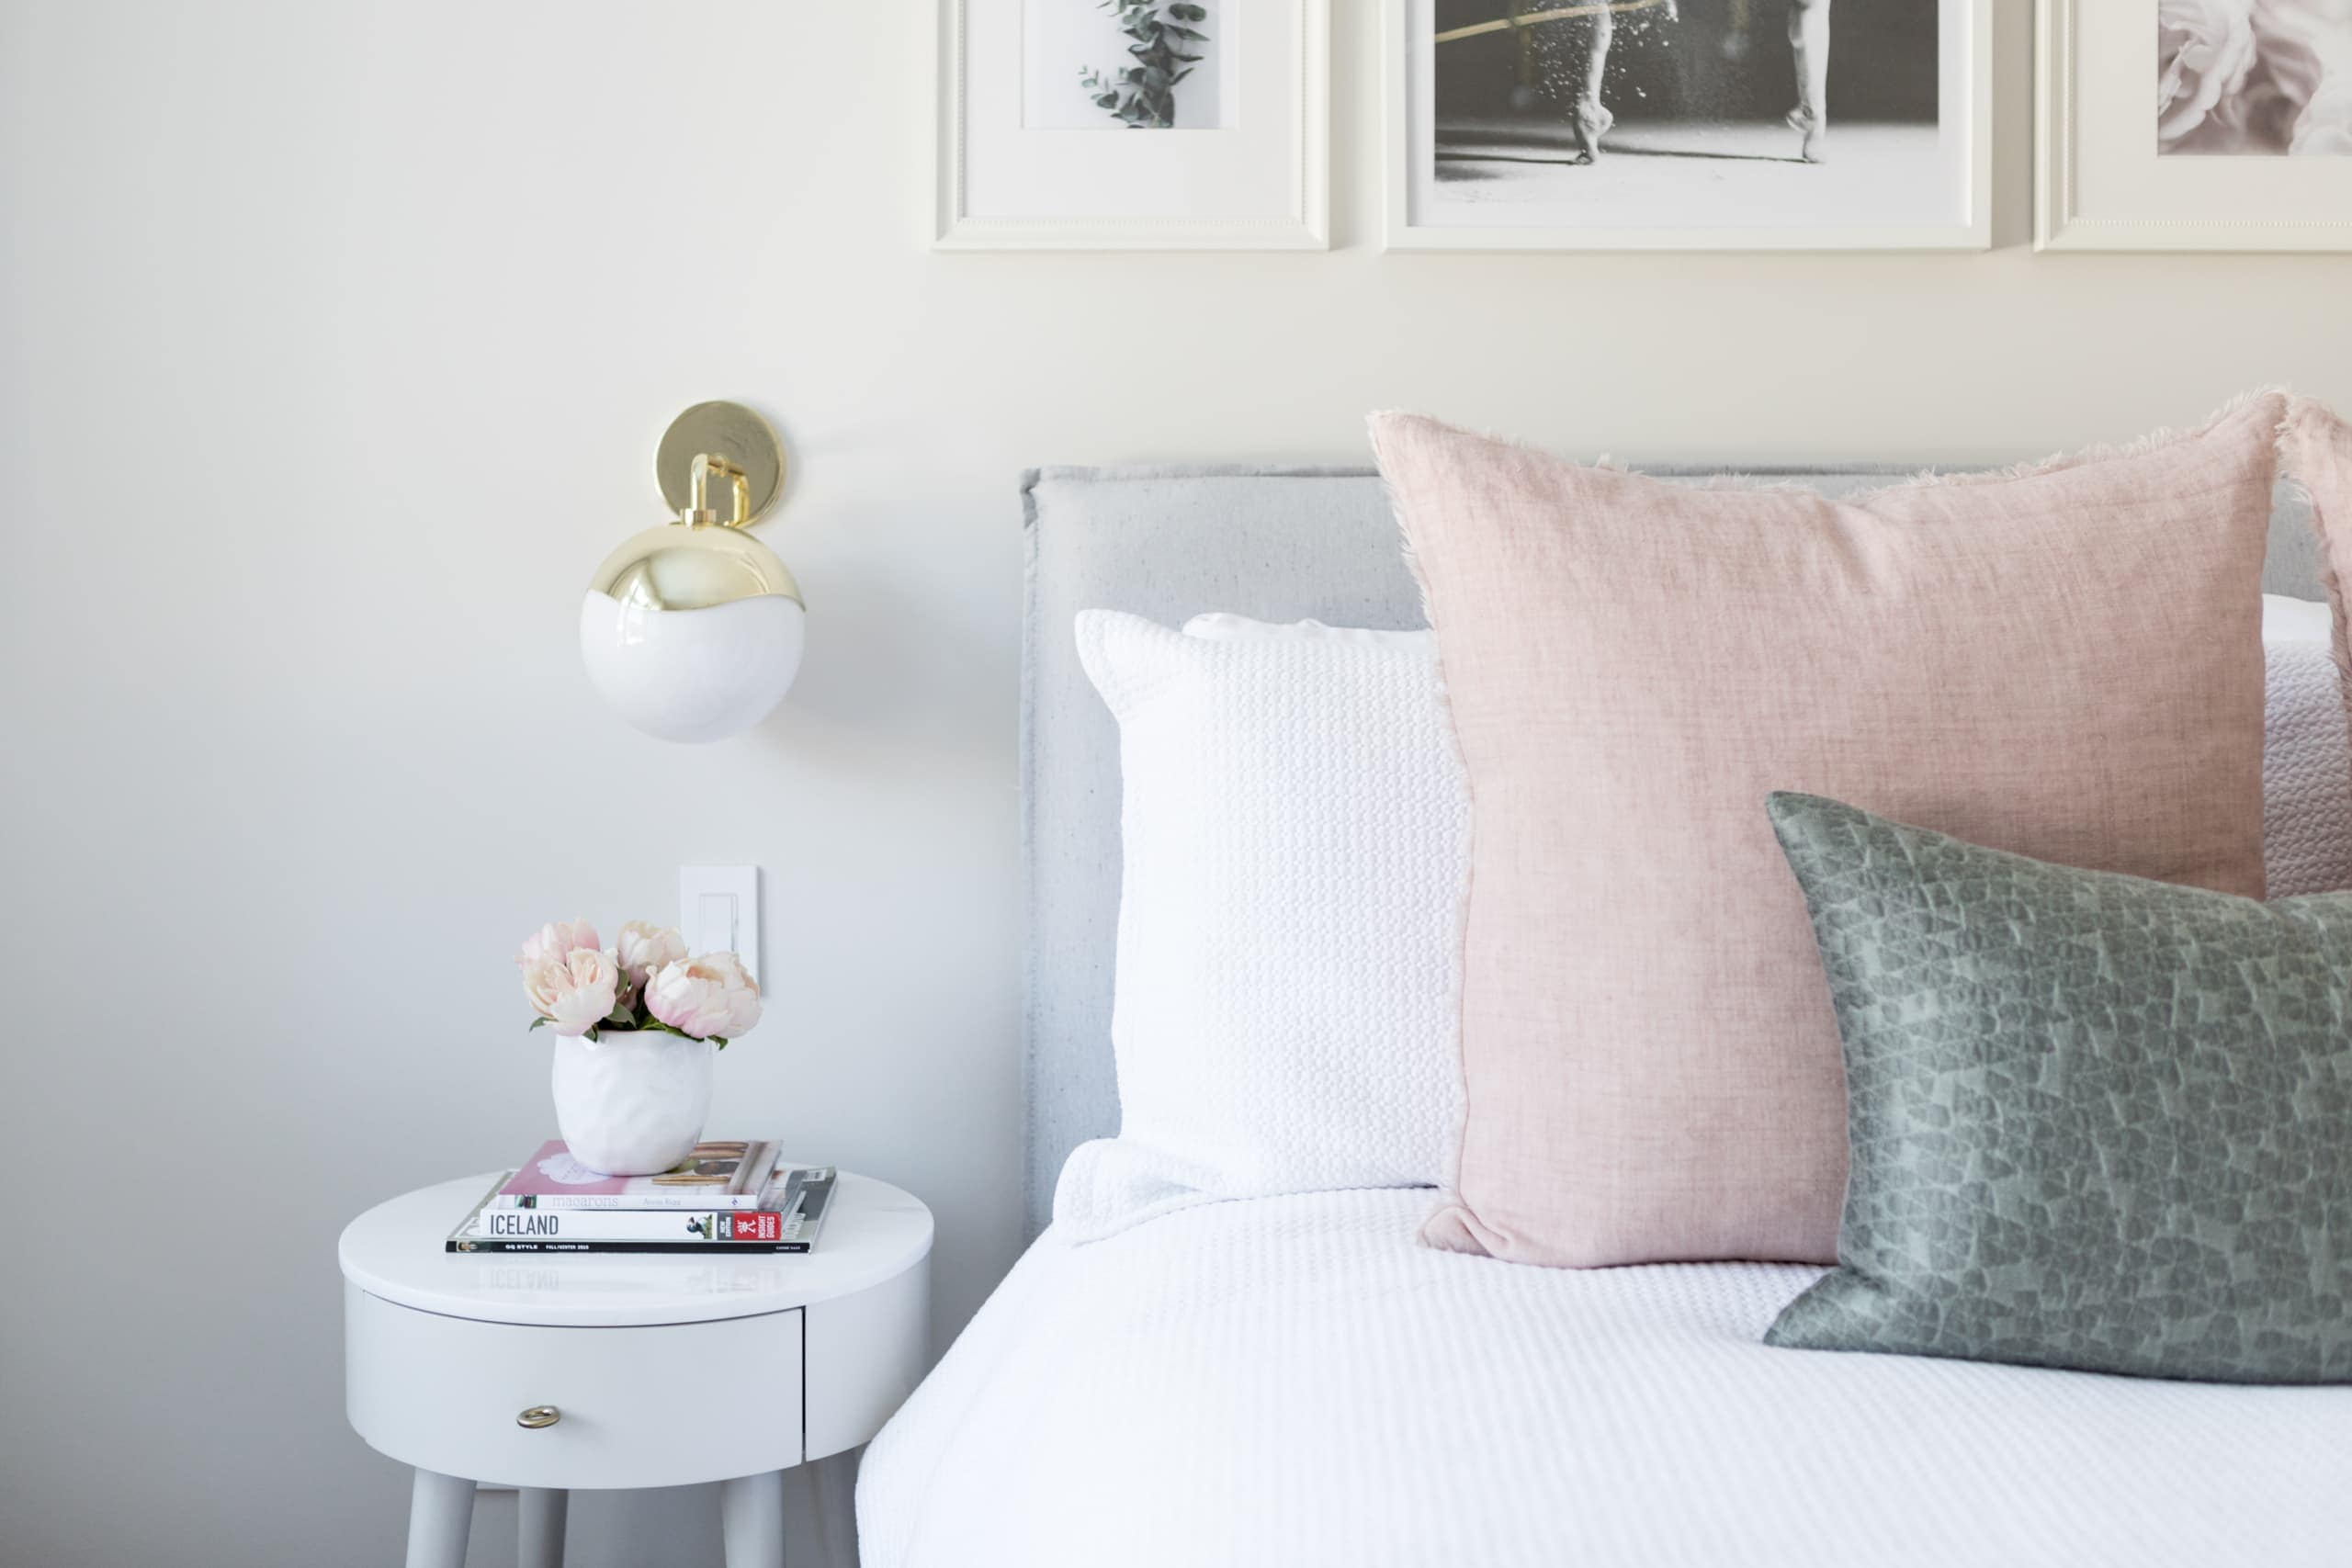 Bed side table next to large white bed